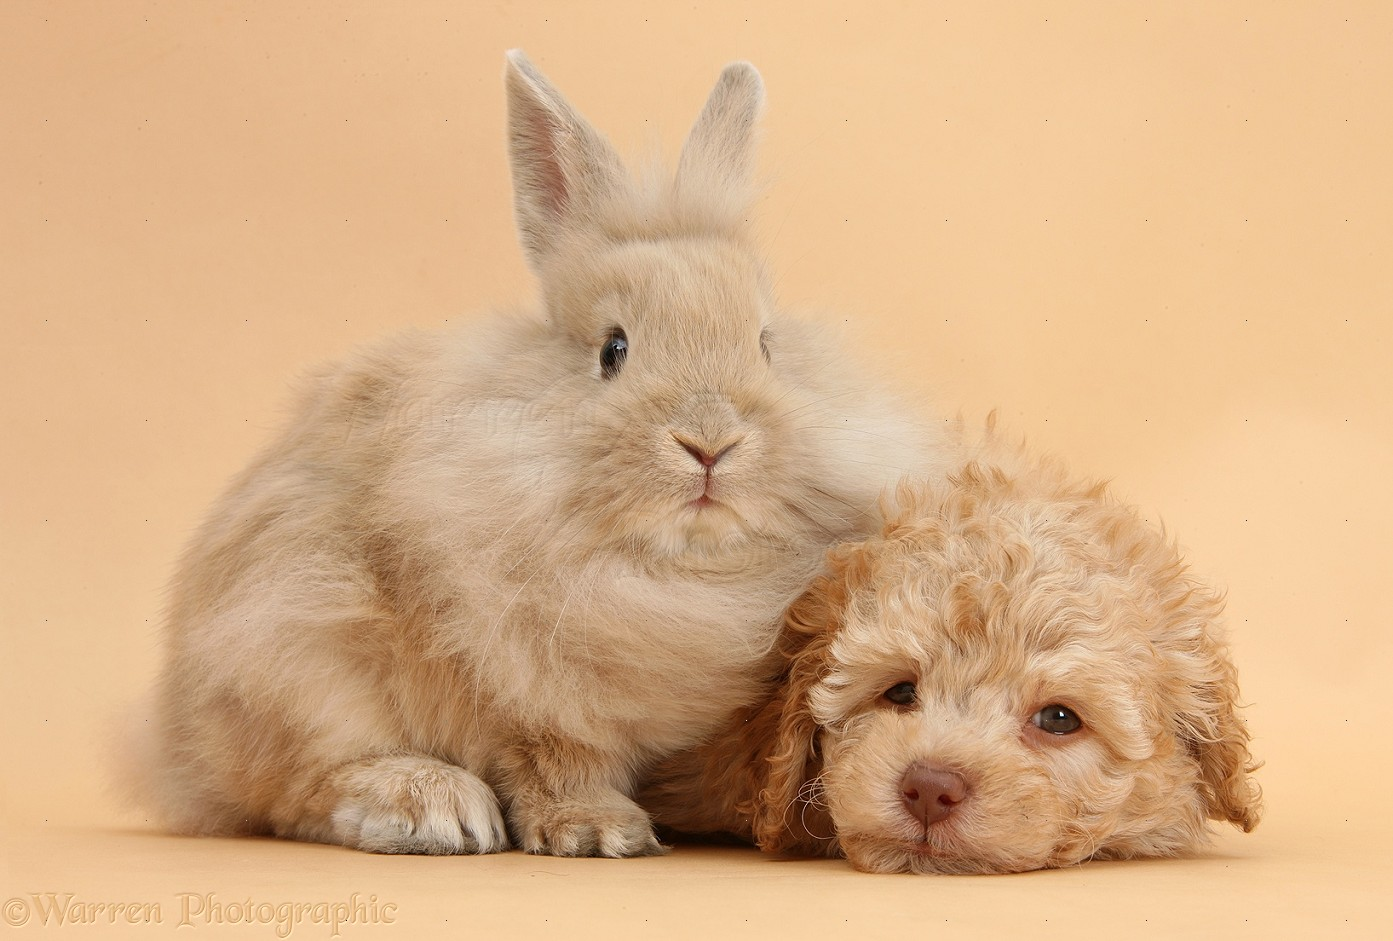 Toy Labradoodle Puppy And Lionhead Cross Rabbit On Beige Background